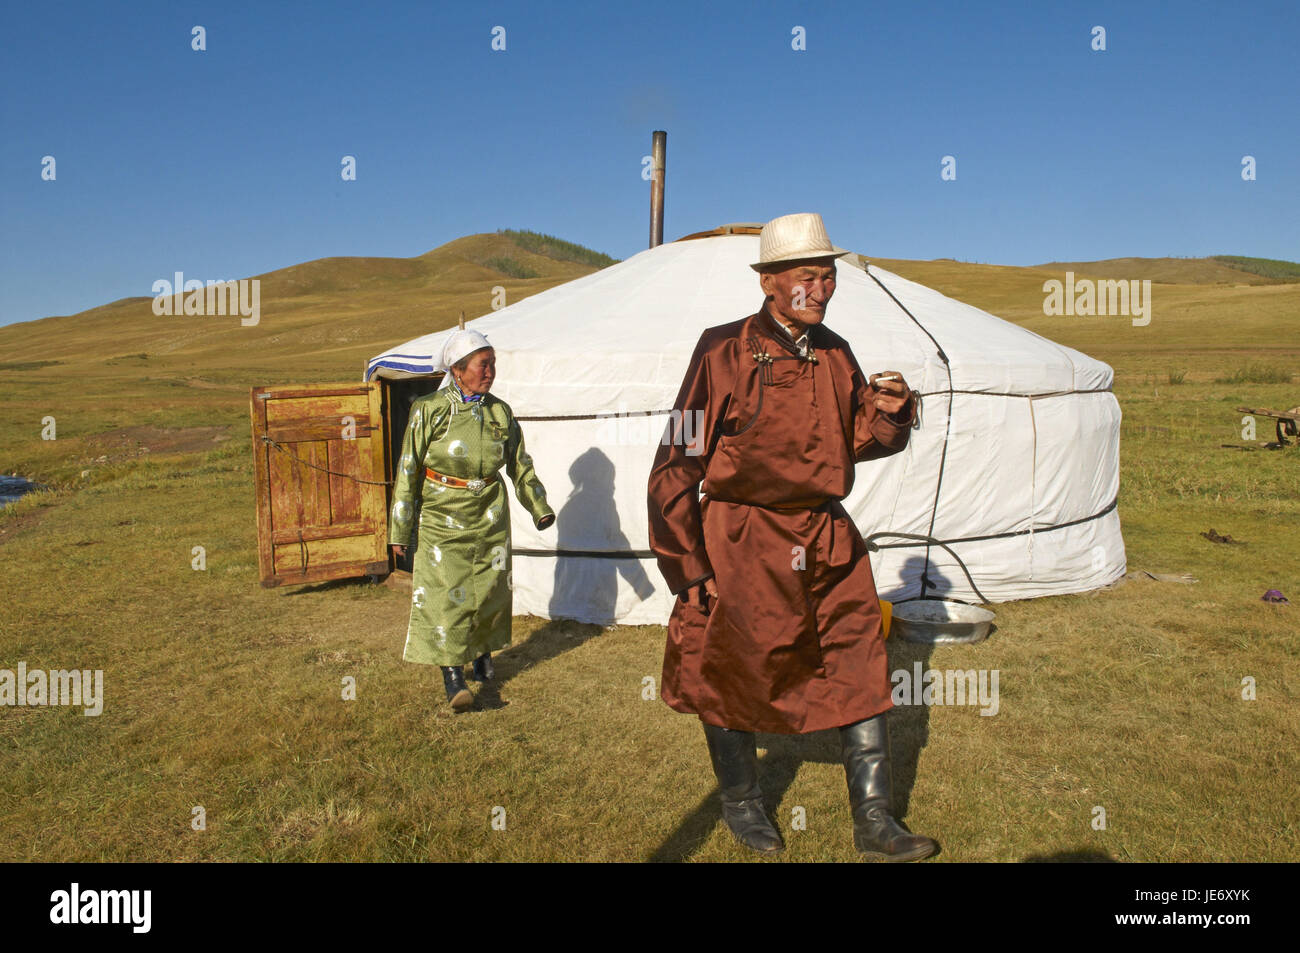 Mongolia, Central Asia, Arkhangai province, nomad in traditional clothes before her Jurte, Stock Photo